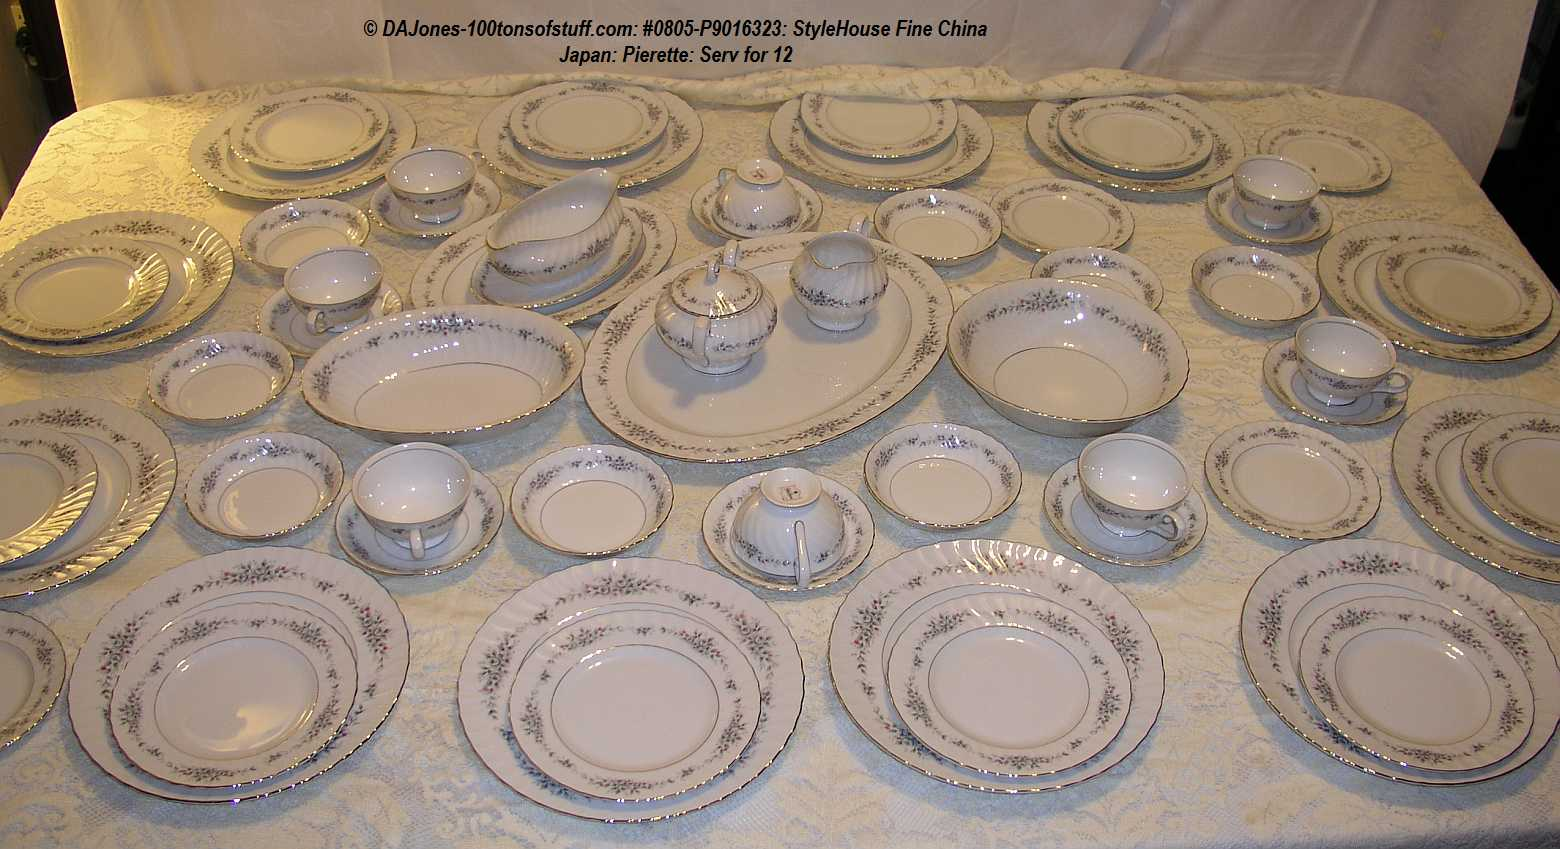 100tos#0805 12 Place Setting Of Stylehouse Fine China